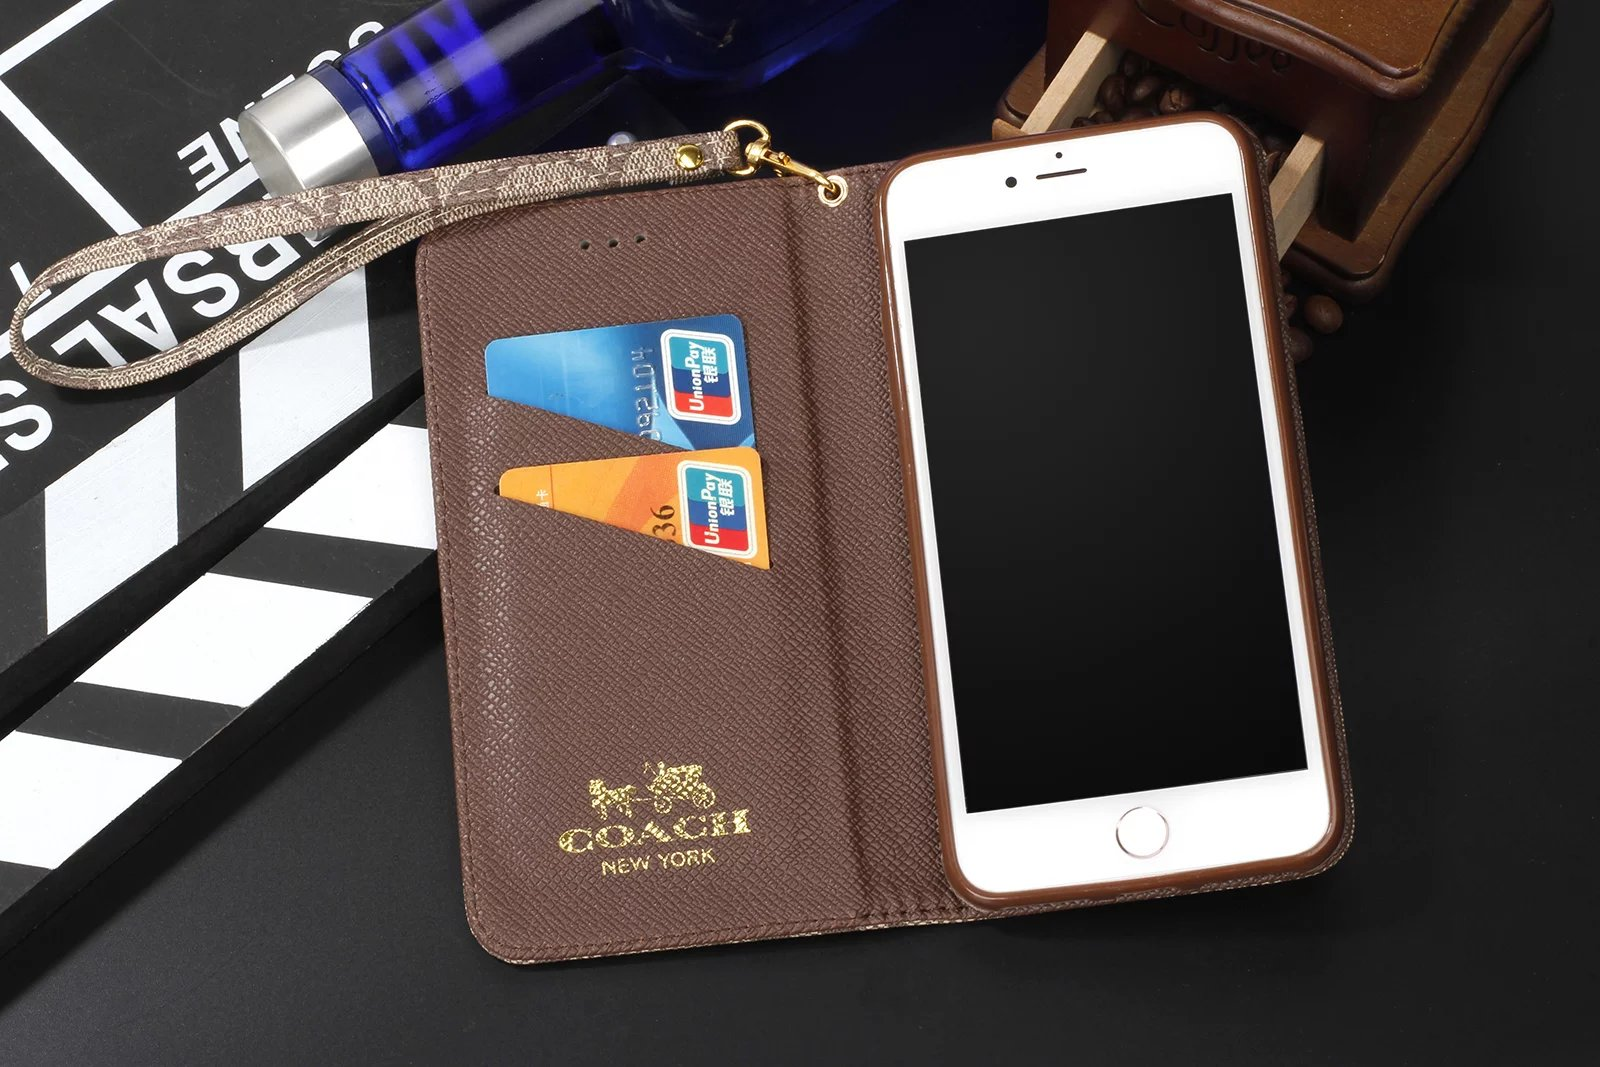 apple iphone 6s case the best case for iphone 6s fashion iphone6s case print your own iphone case iphone 6s cases personalized ipod 6s phone cases best designer iphone 6s cases cases for the iphone 6s design ipod 6s case